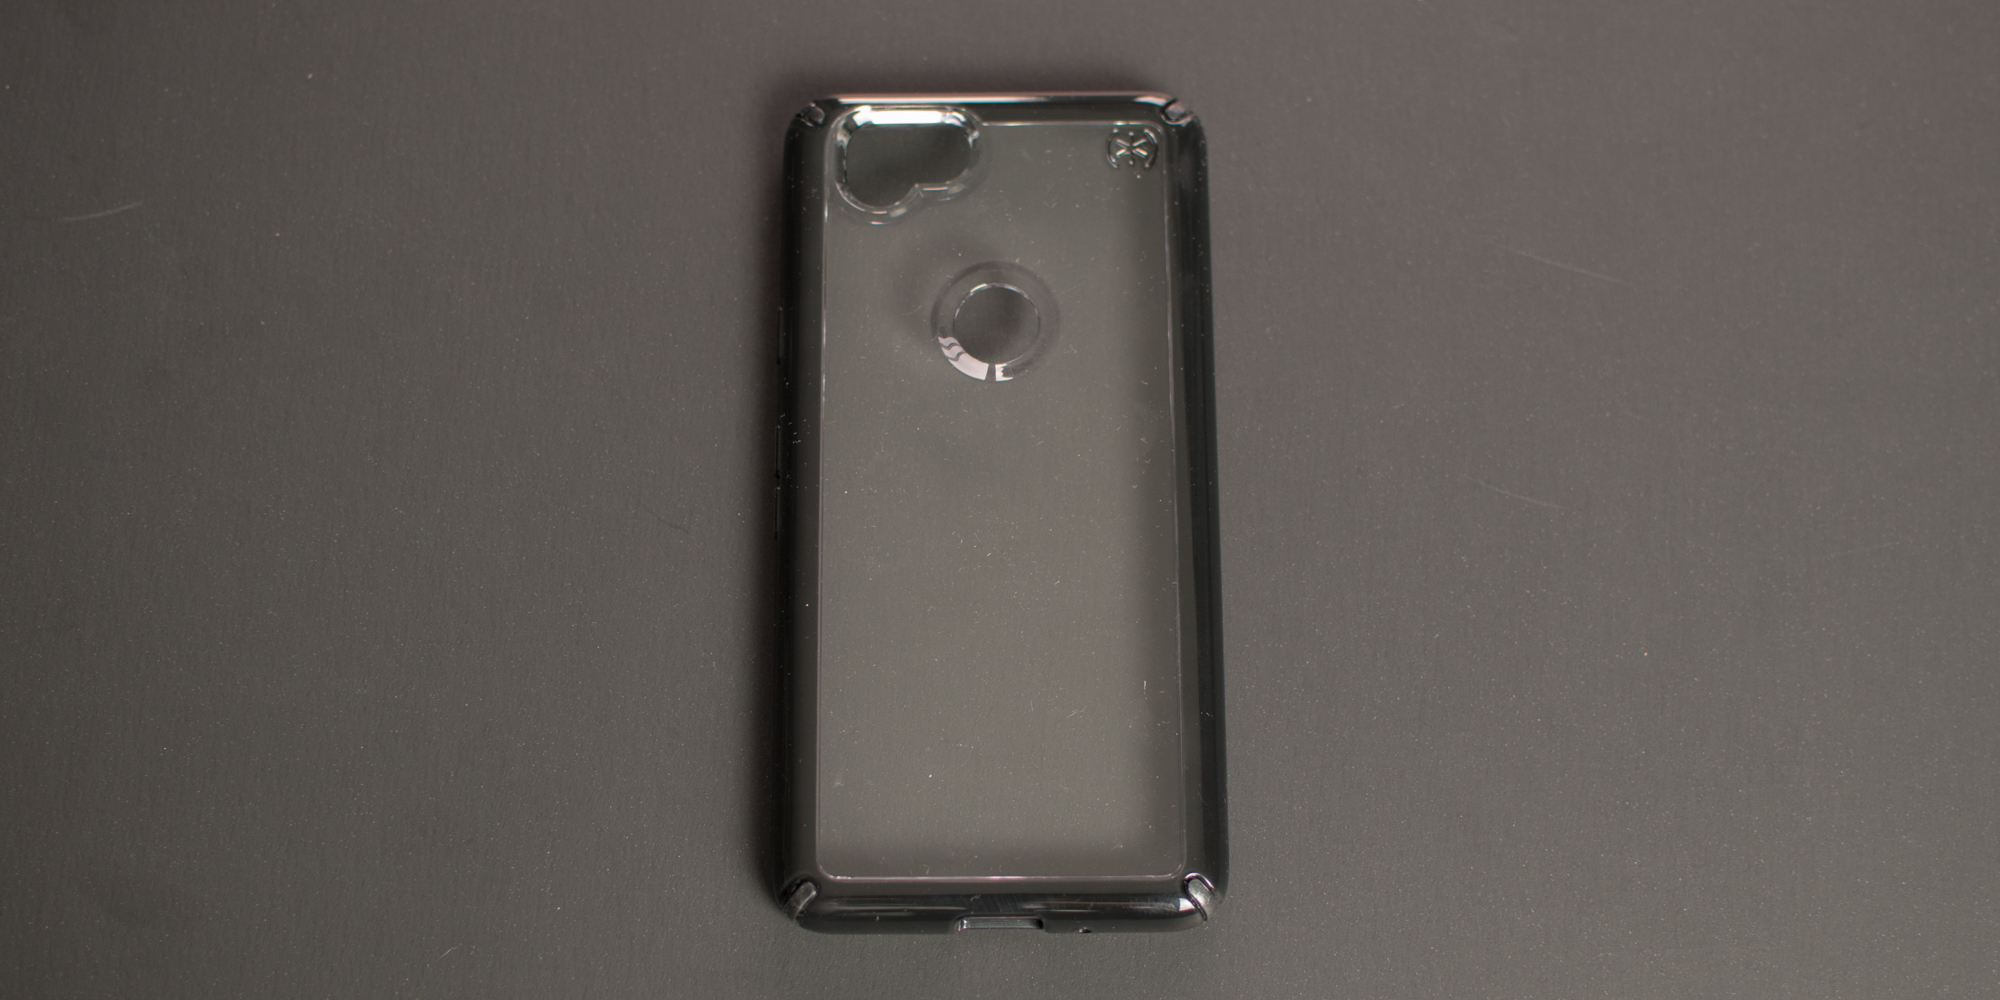 new products 2066b 1c567 Review: Speck's Made for Google Presidio Grip, Clear & Show cases ...